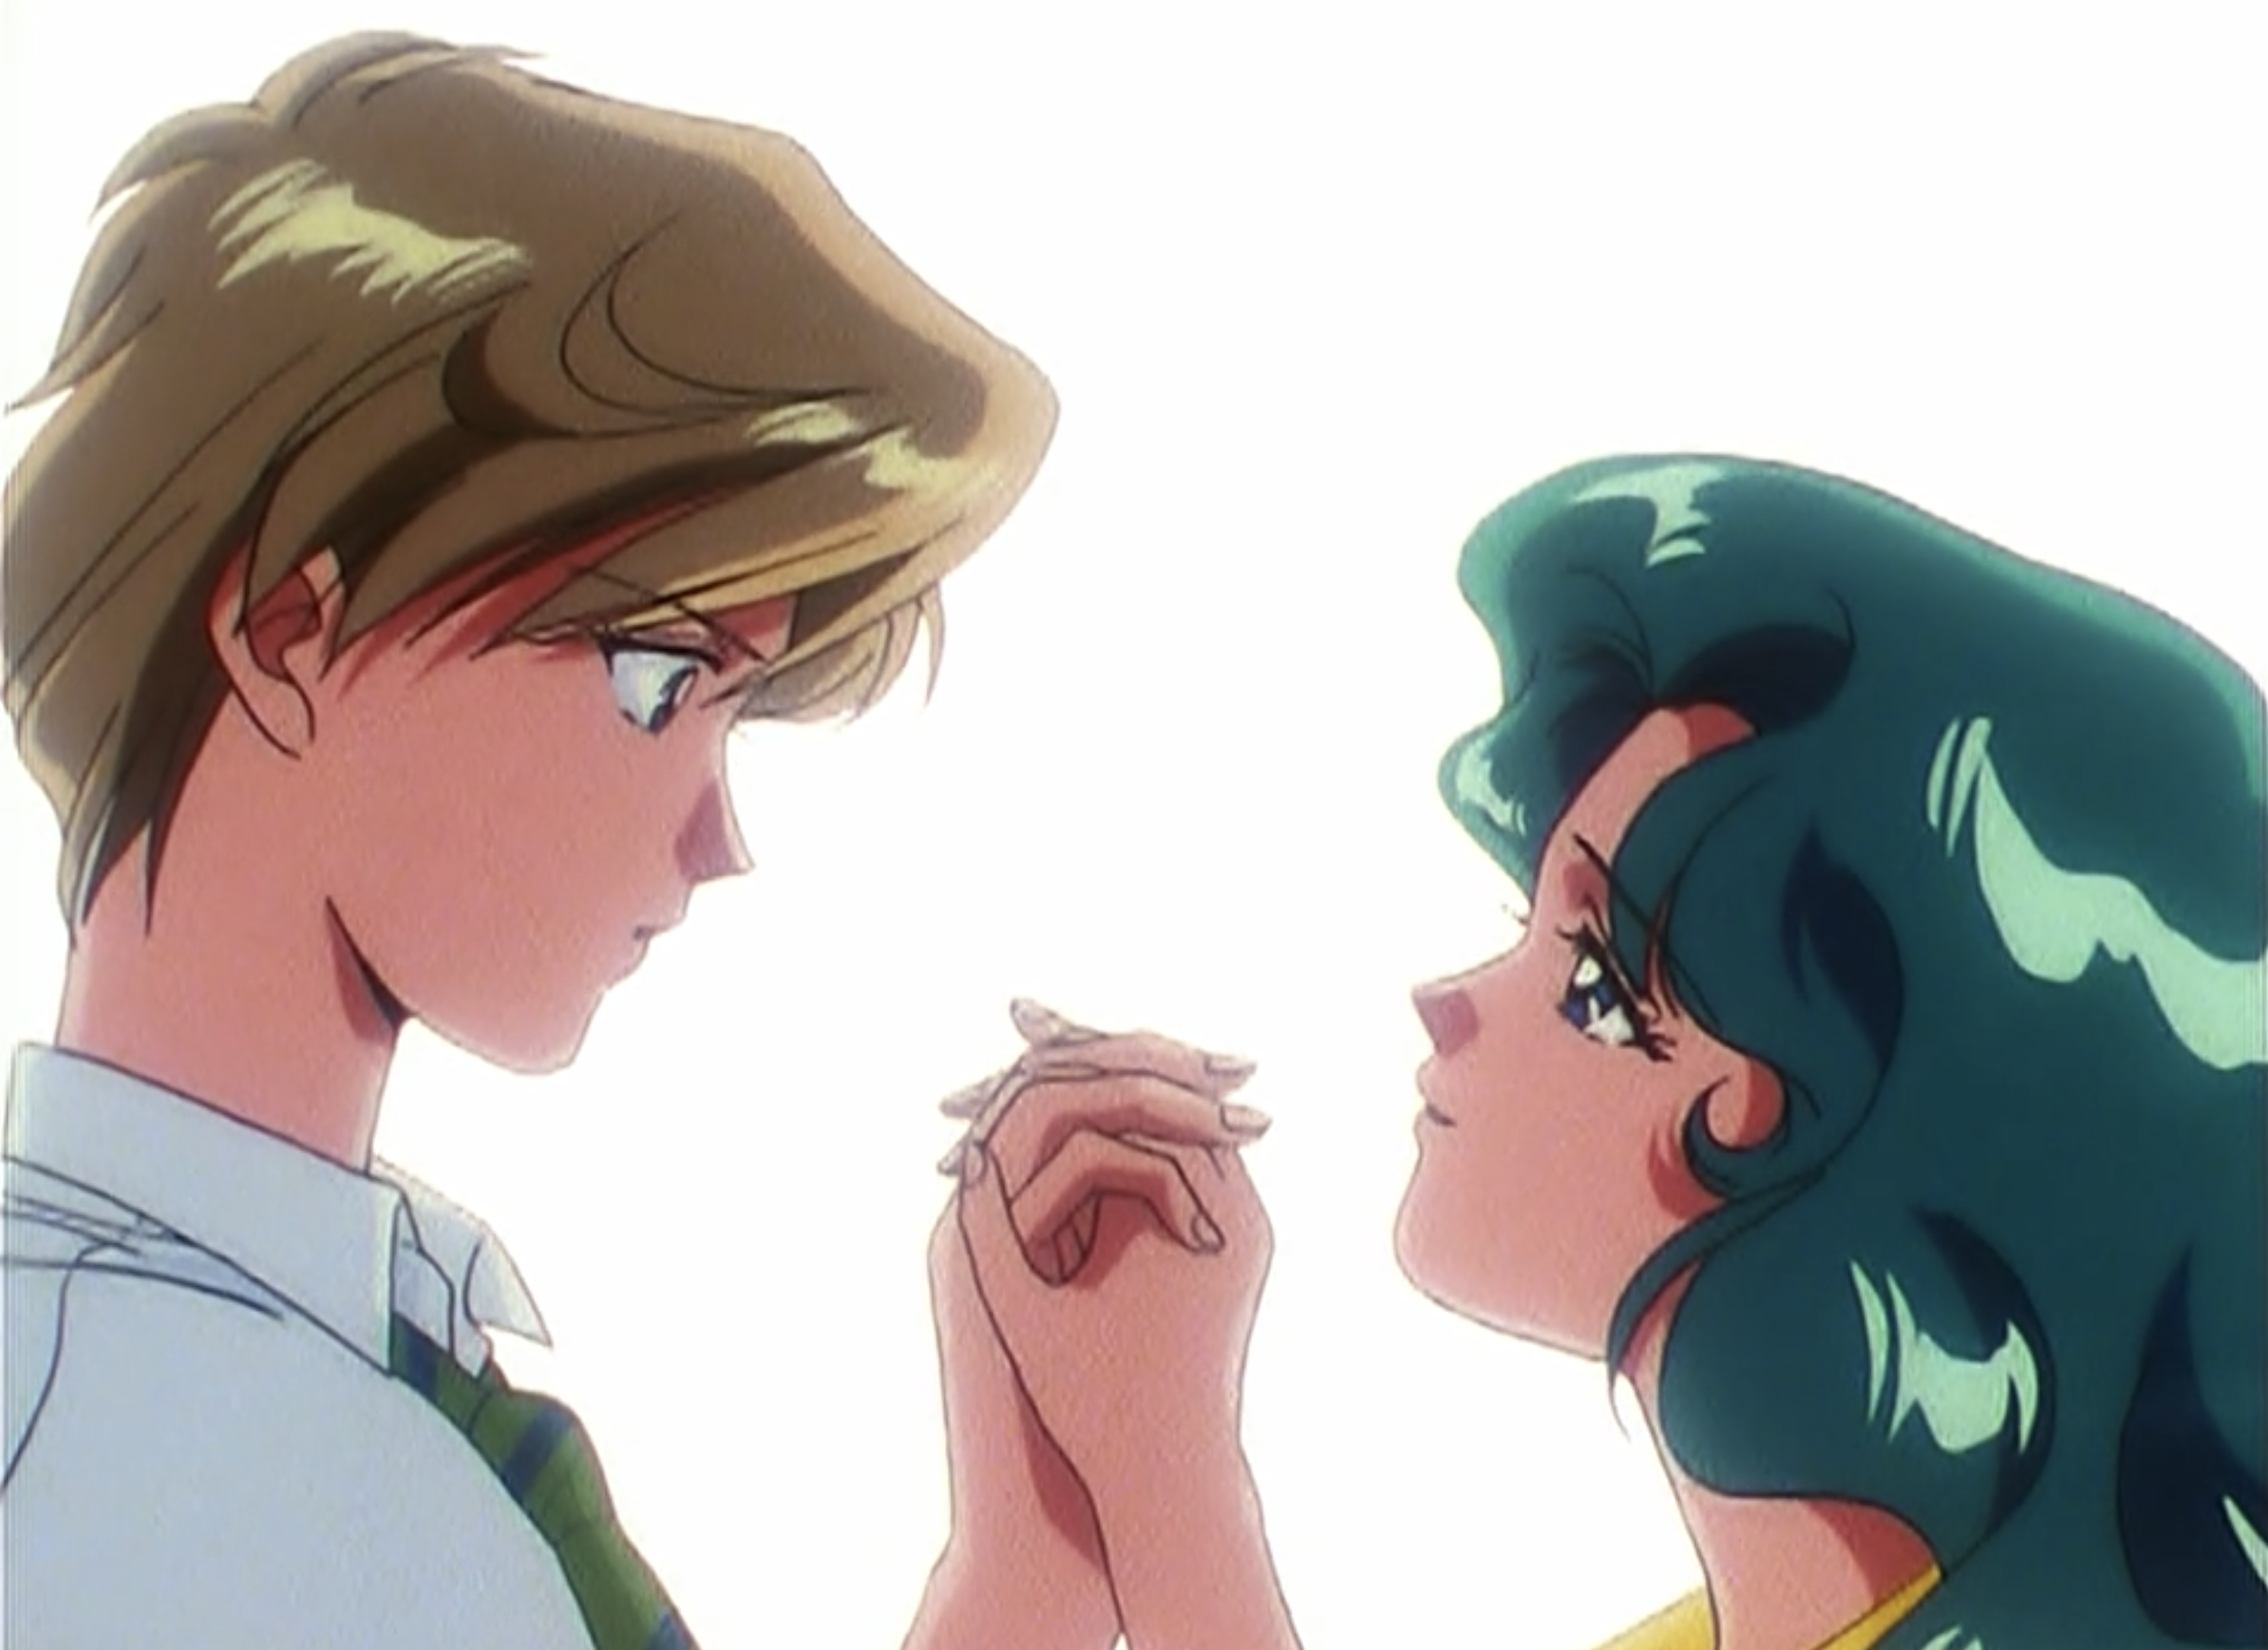 Haruka and Michiru holding hands and looking at each other romantically.